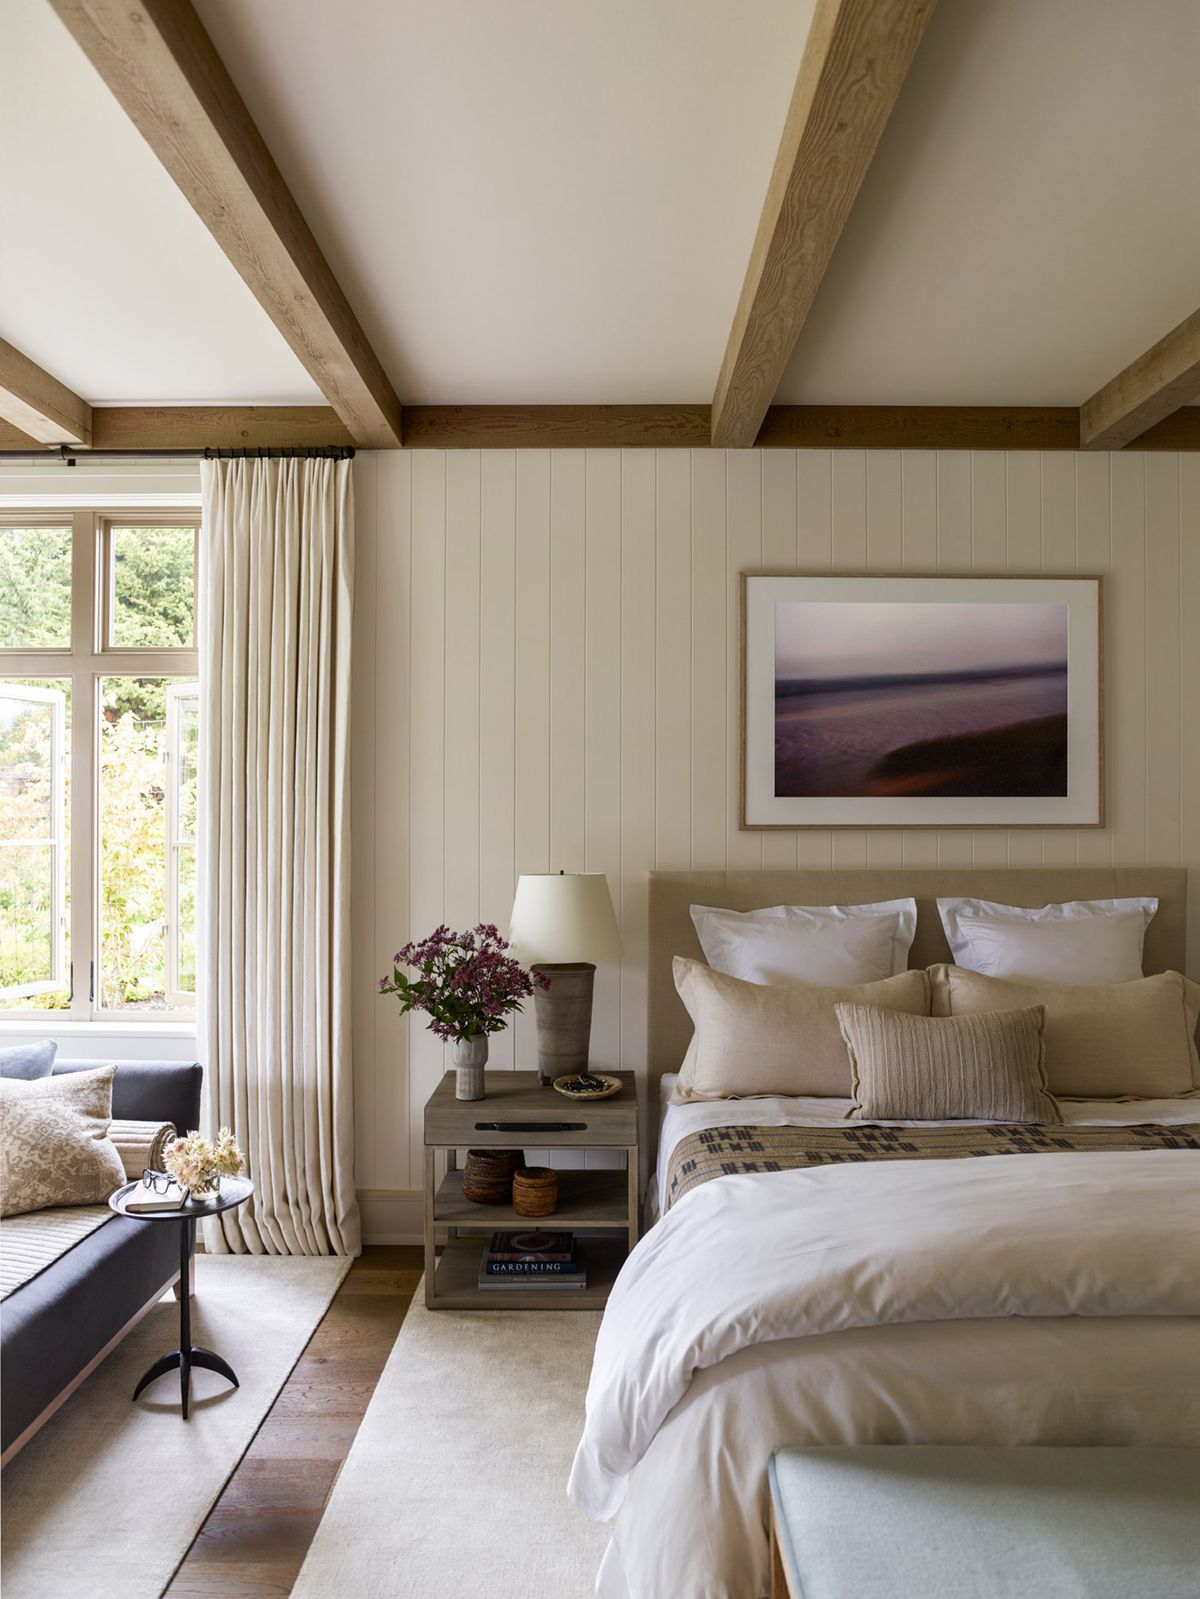 House tour tradition meets pacific northwest in this island home